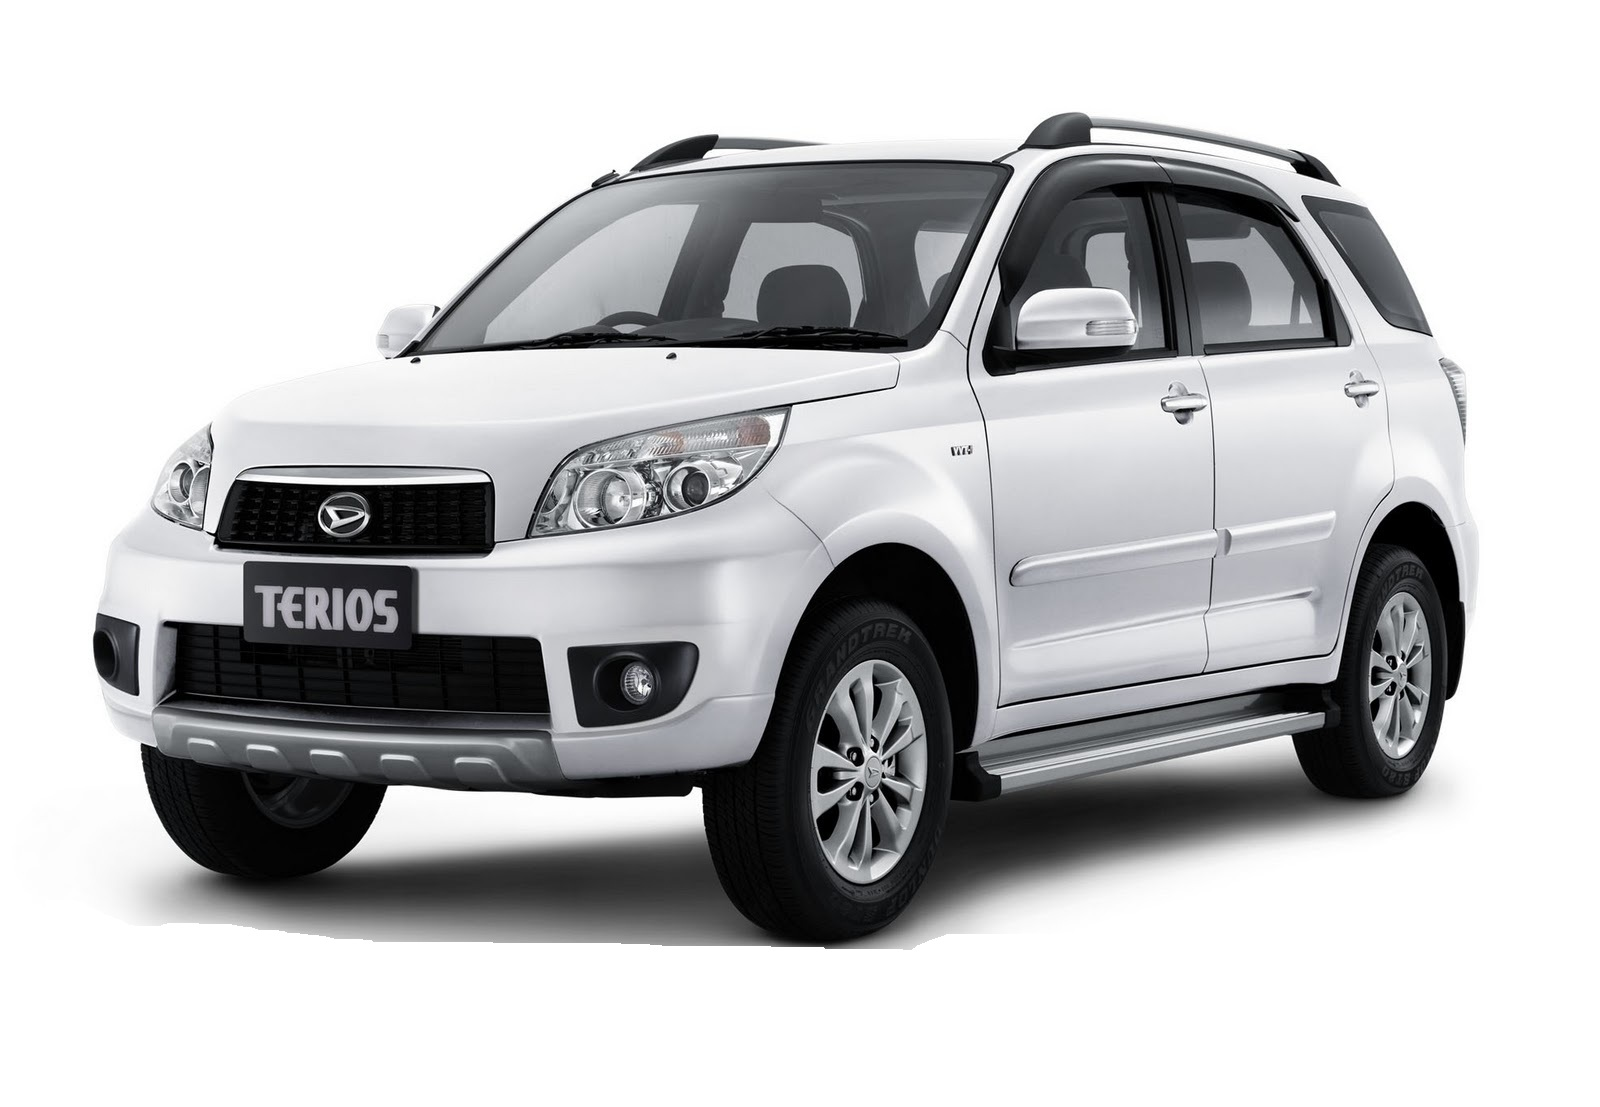 Daihatsu Terios in Pakistan, Daihatsu Terios Prices, Reviews and ...